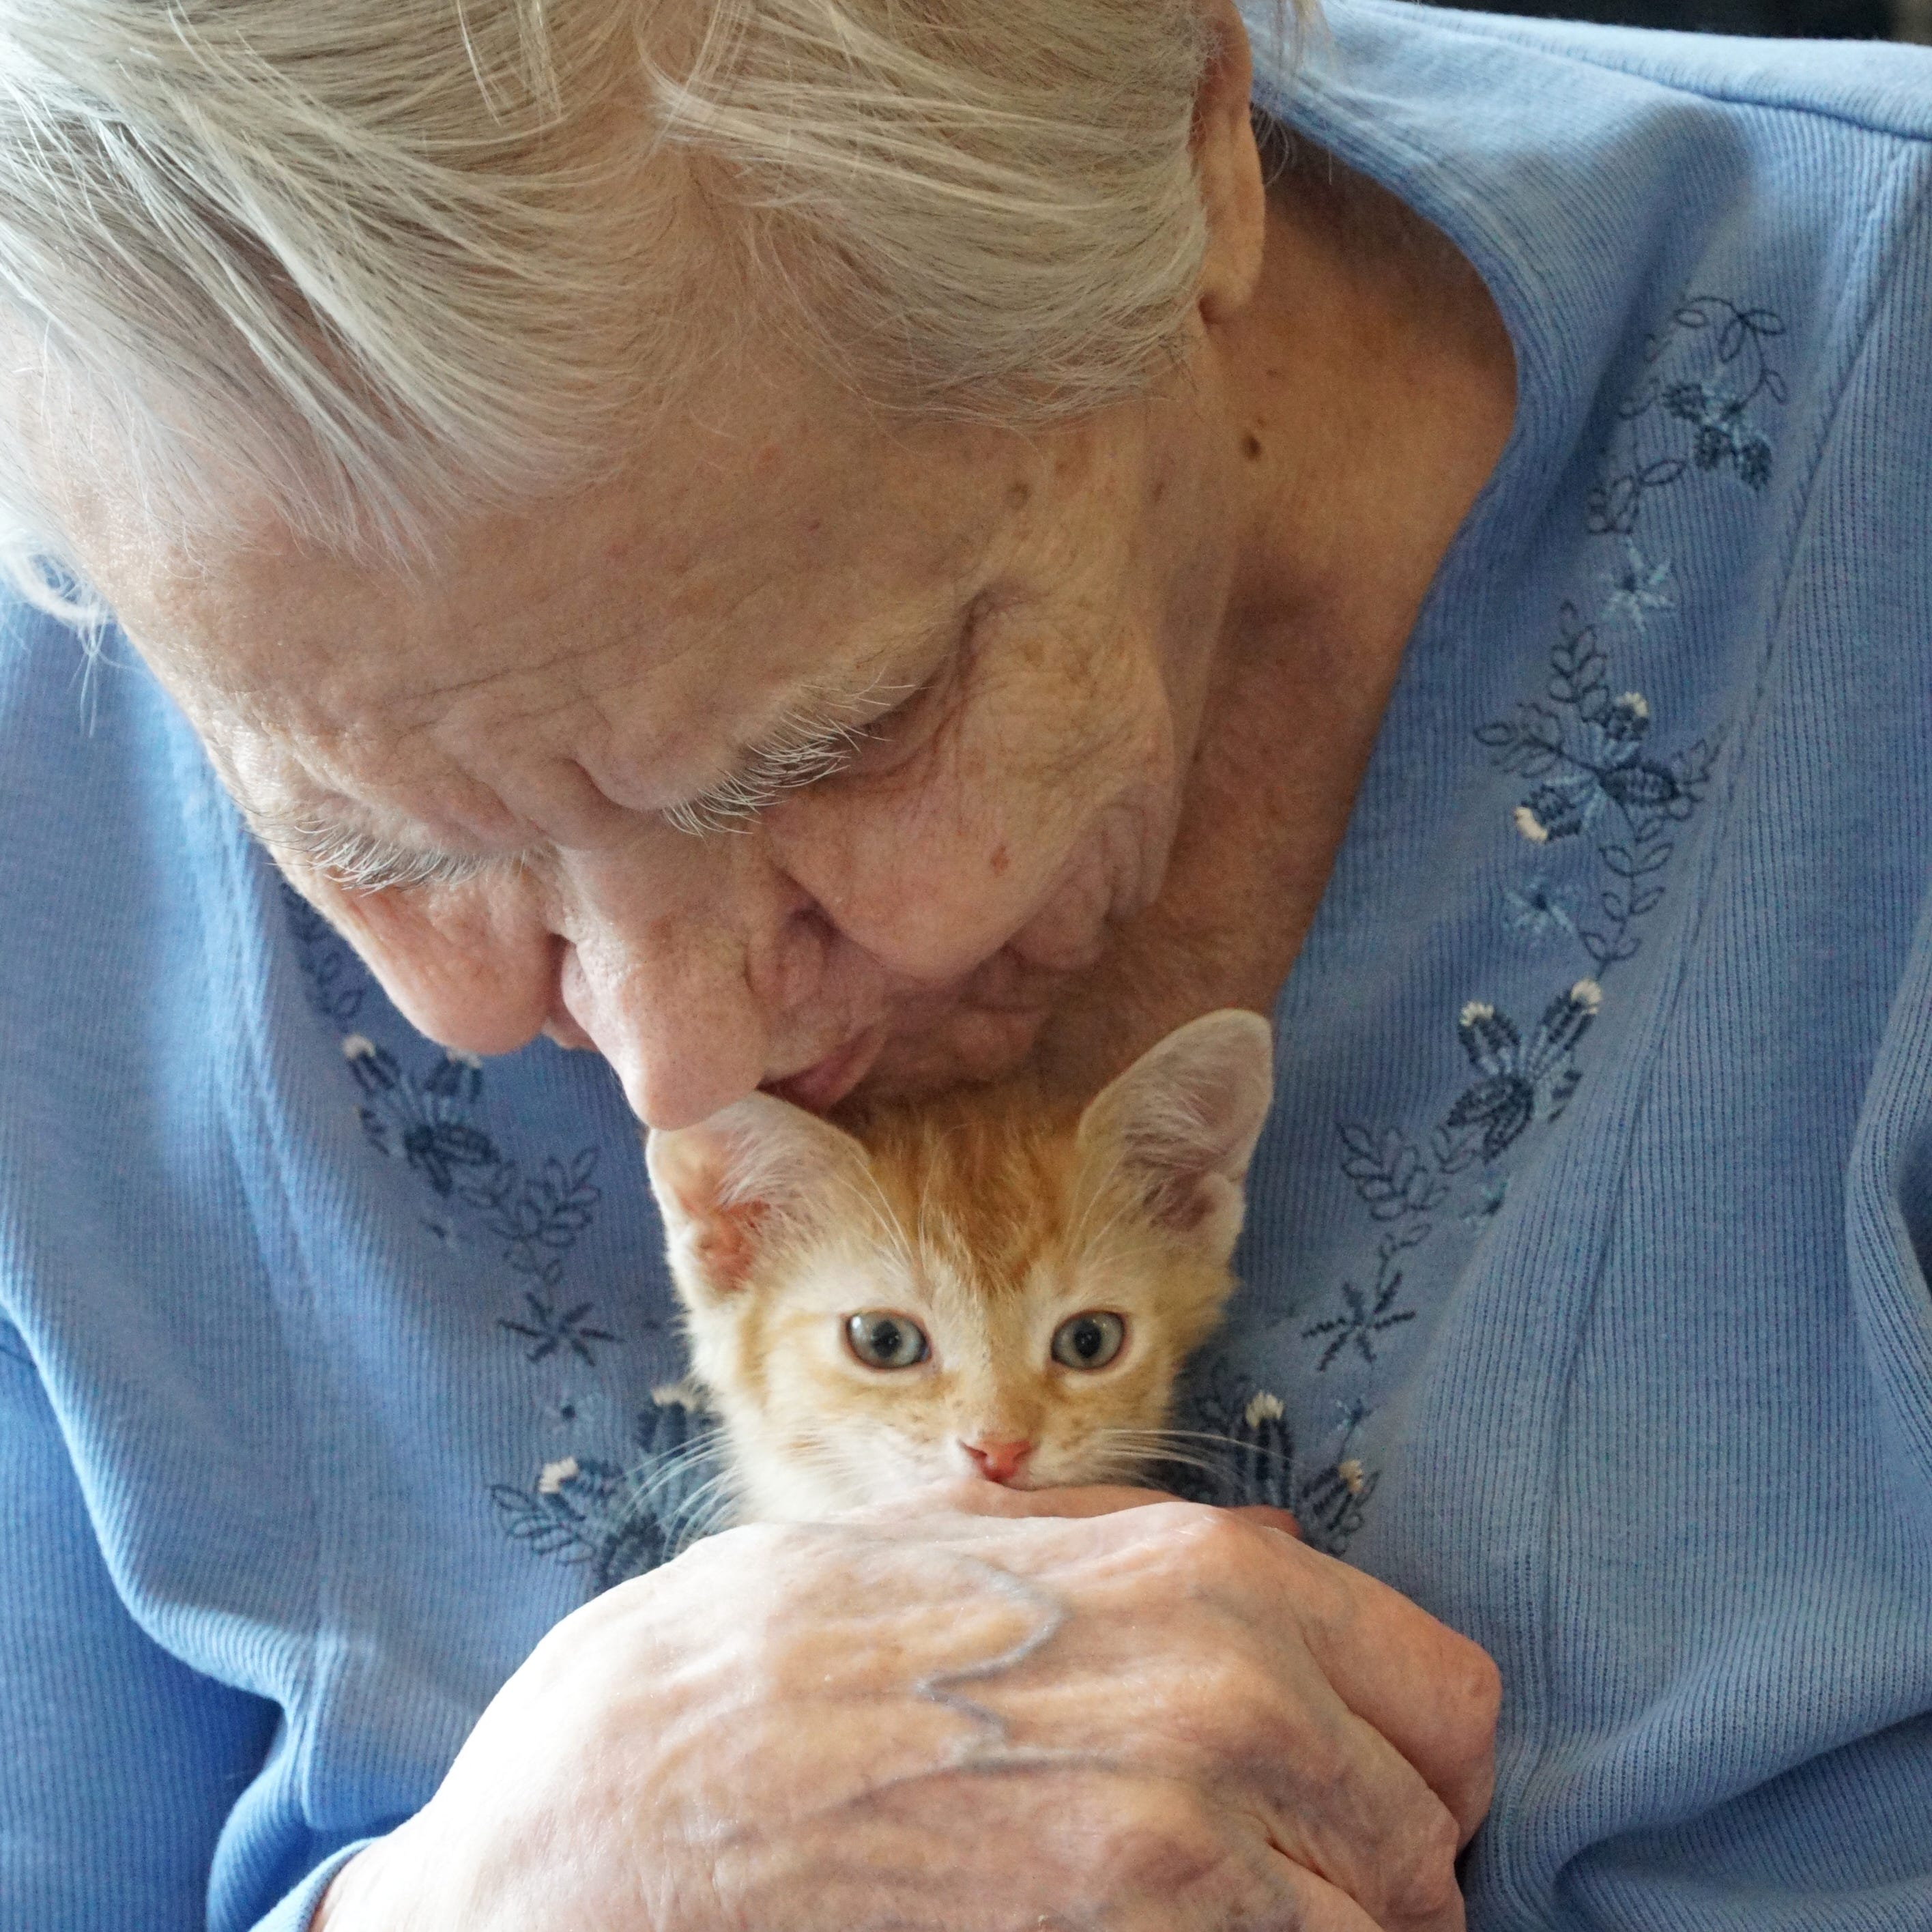 Cat-a-tonic: South Lyon seniors get a purrfect prescription for feline therapy